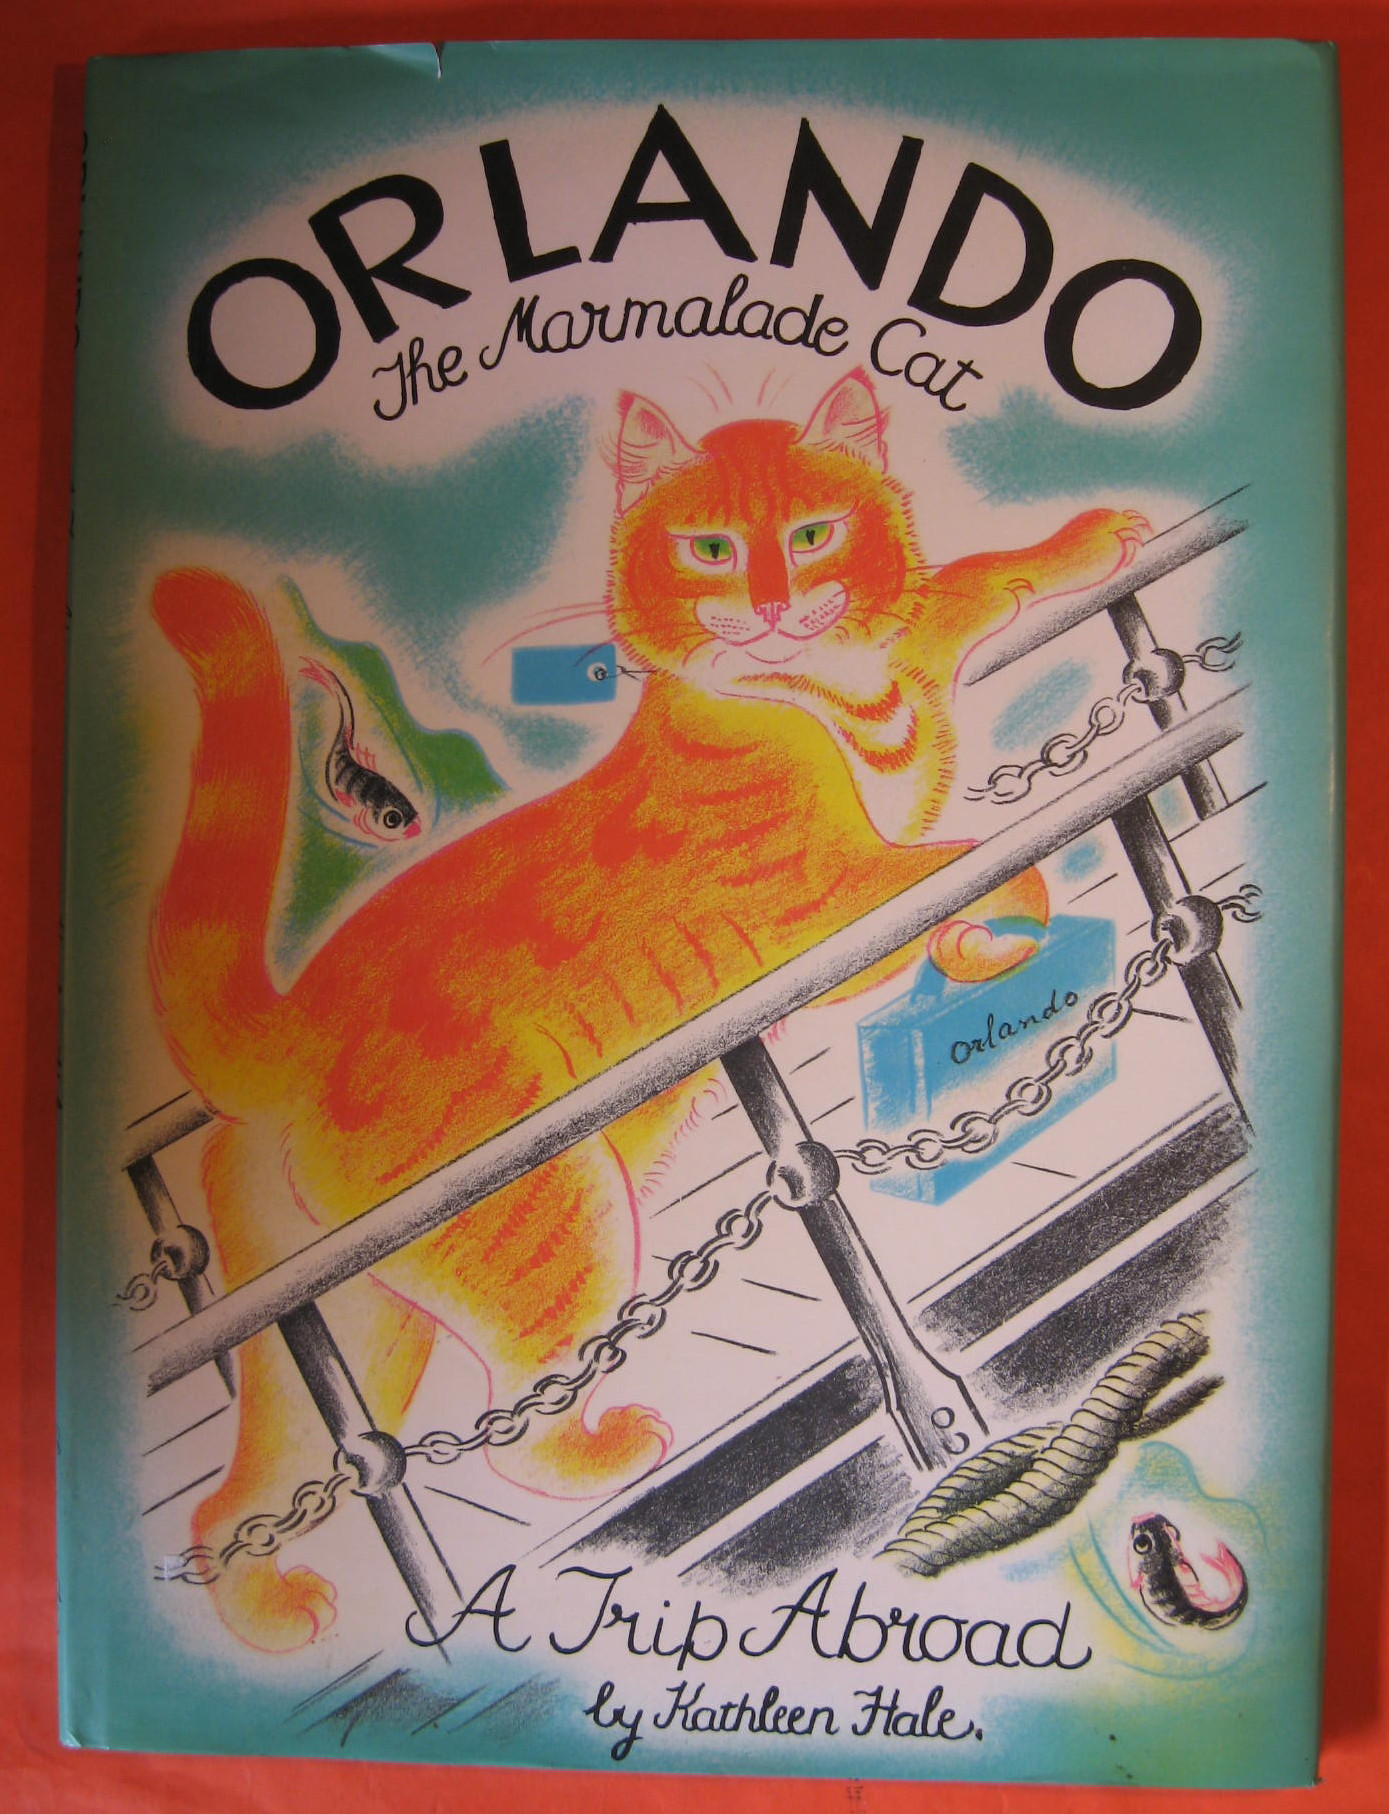 Orlando The Marmalade Cat:   A Trip Abroad